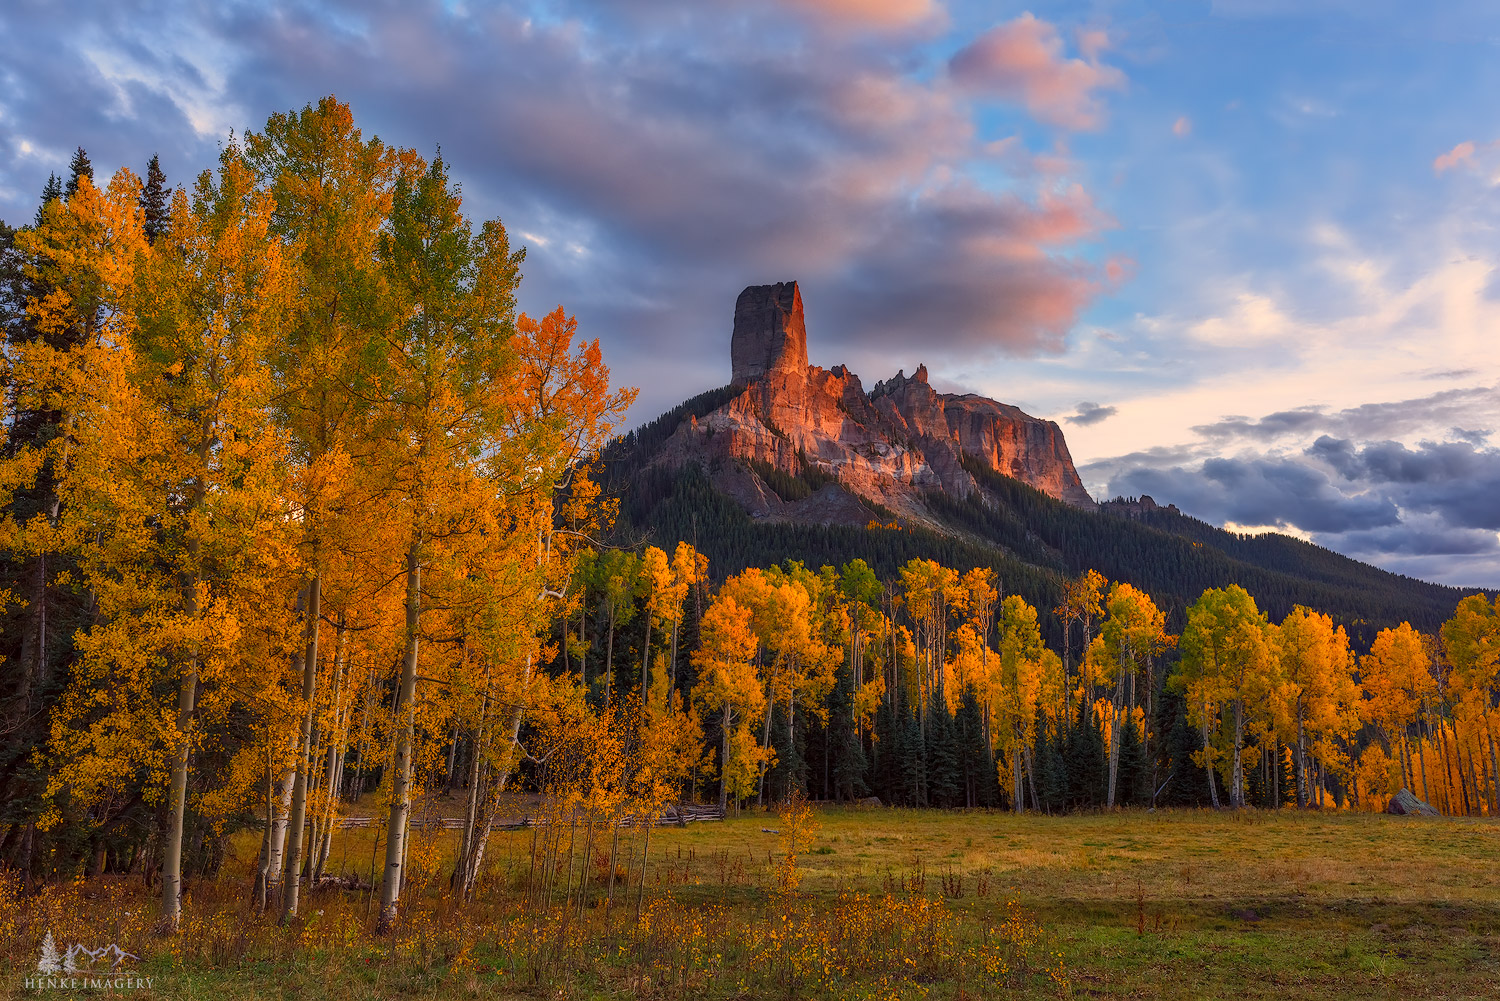 The fall season atChimney Rock is one of those amazing iconic locations in the San Juan Mtns of Colorado. Specifically...